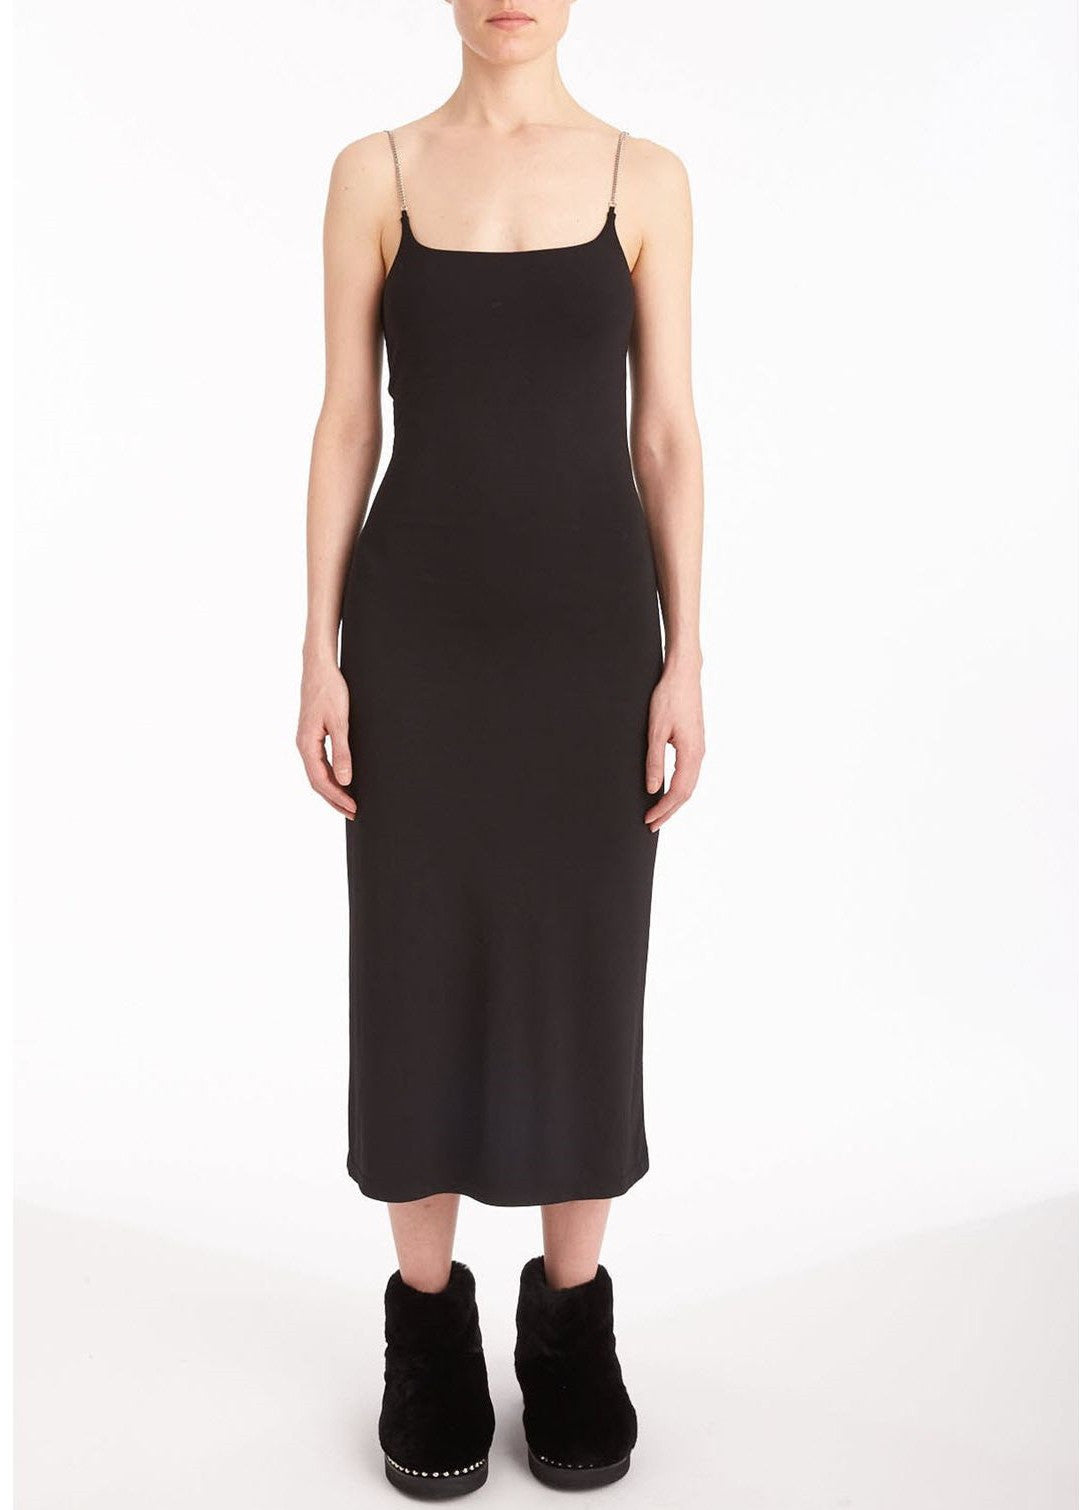 T by Alexander Wang cami dress with chain straps black